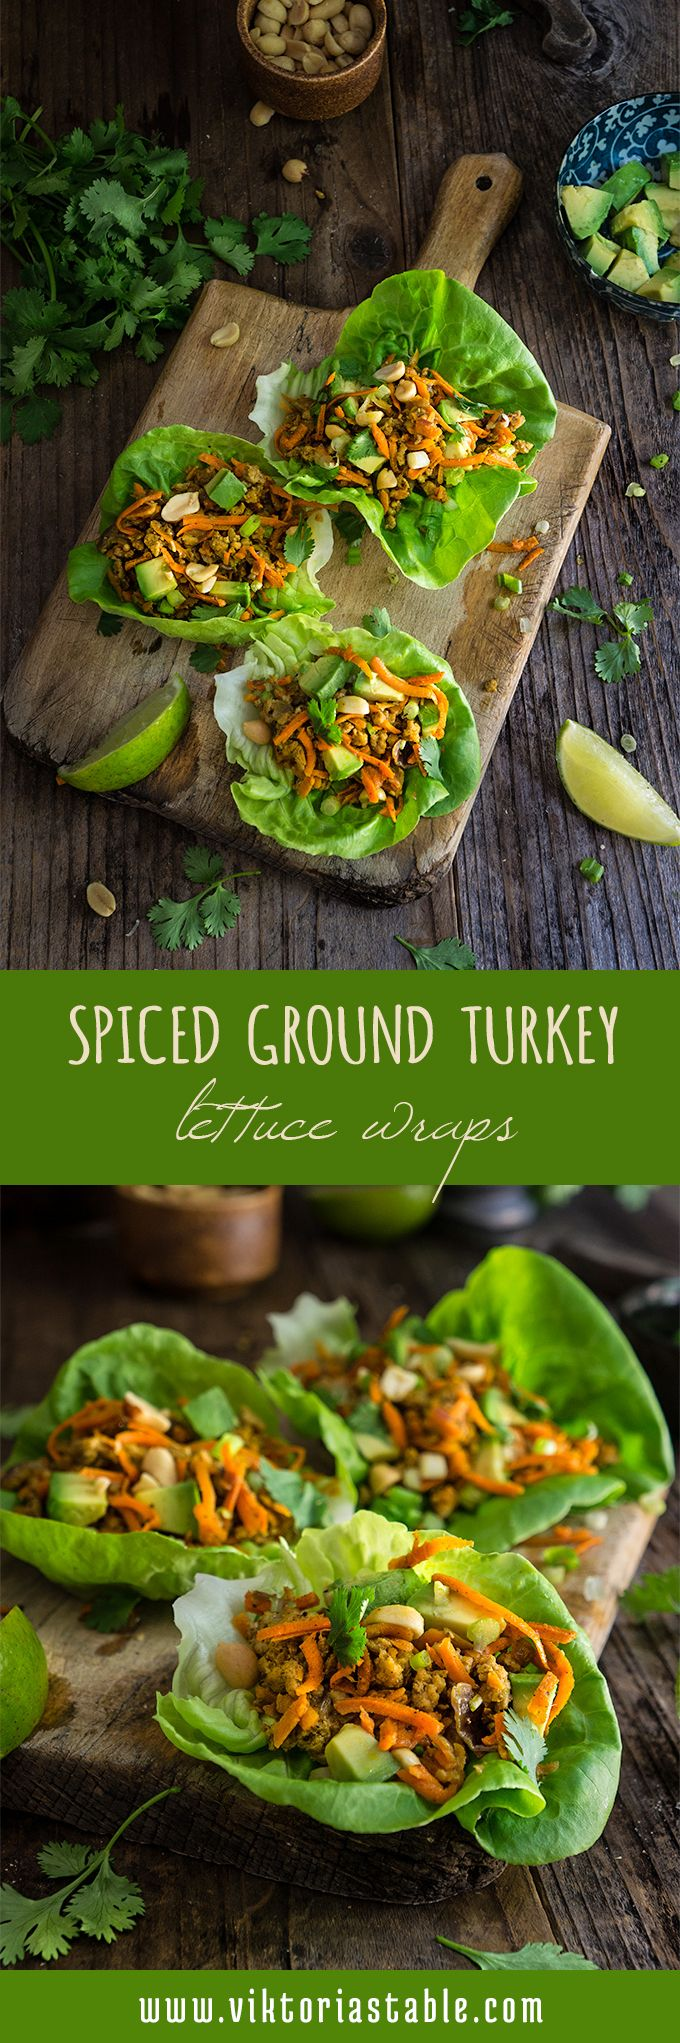 Spiced ground turkey lettuce wraps - a quick and healthy weeknight meal, one of…